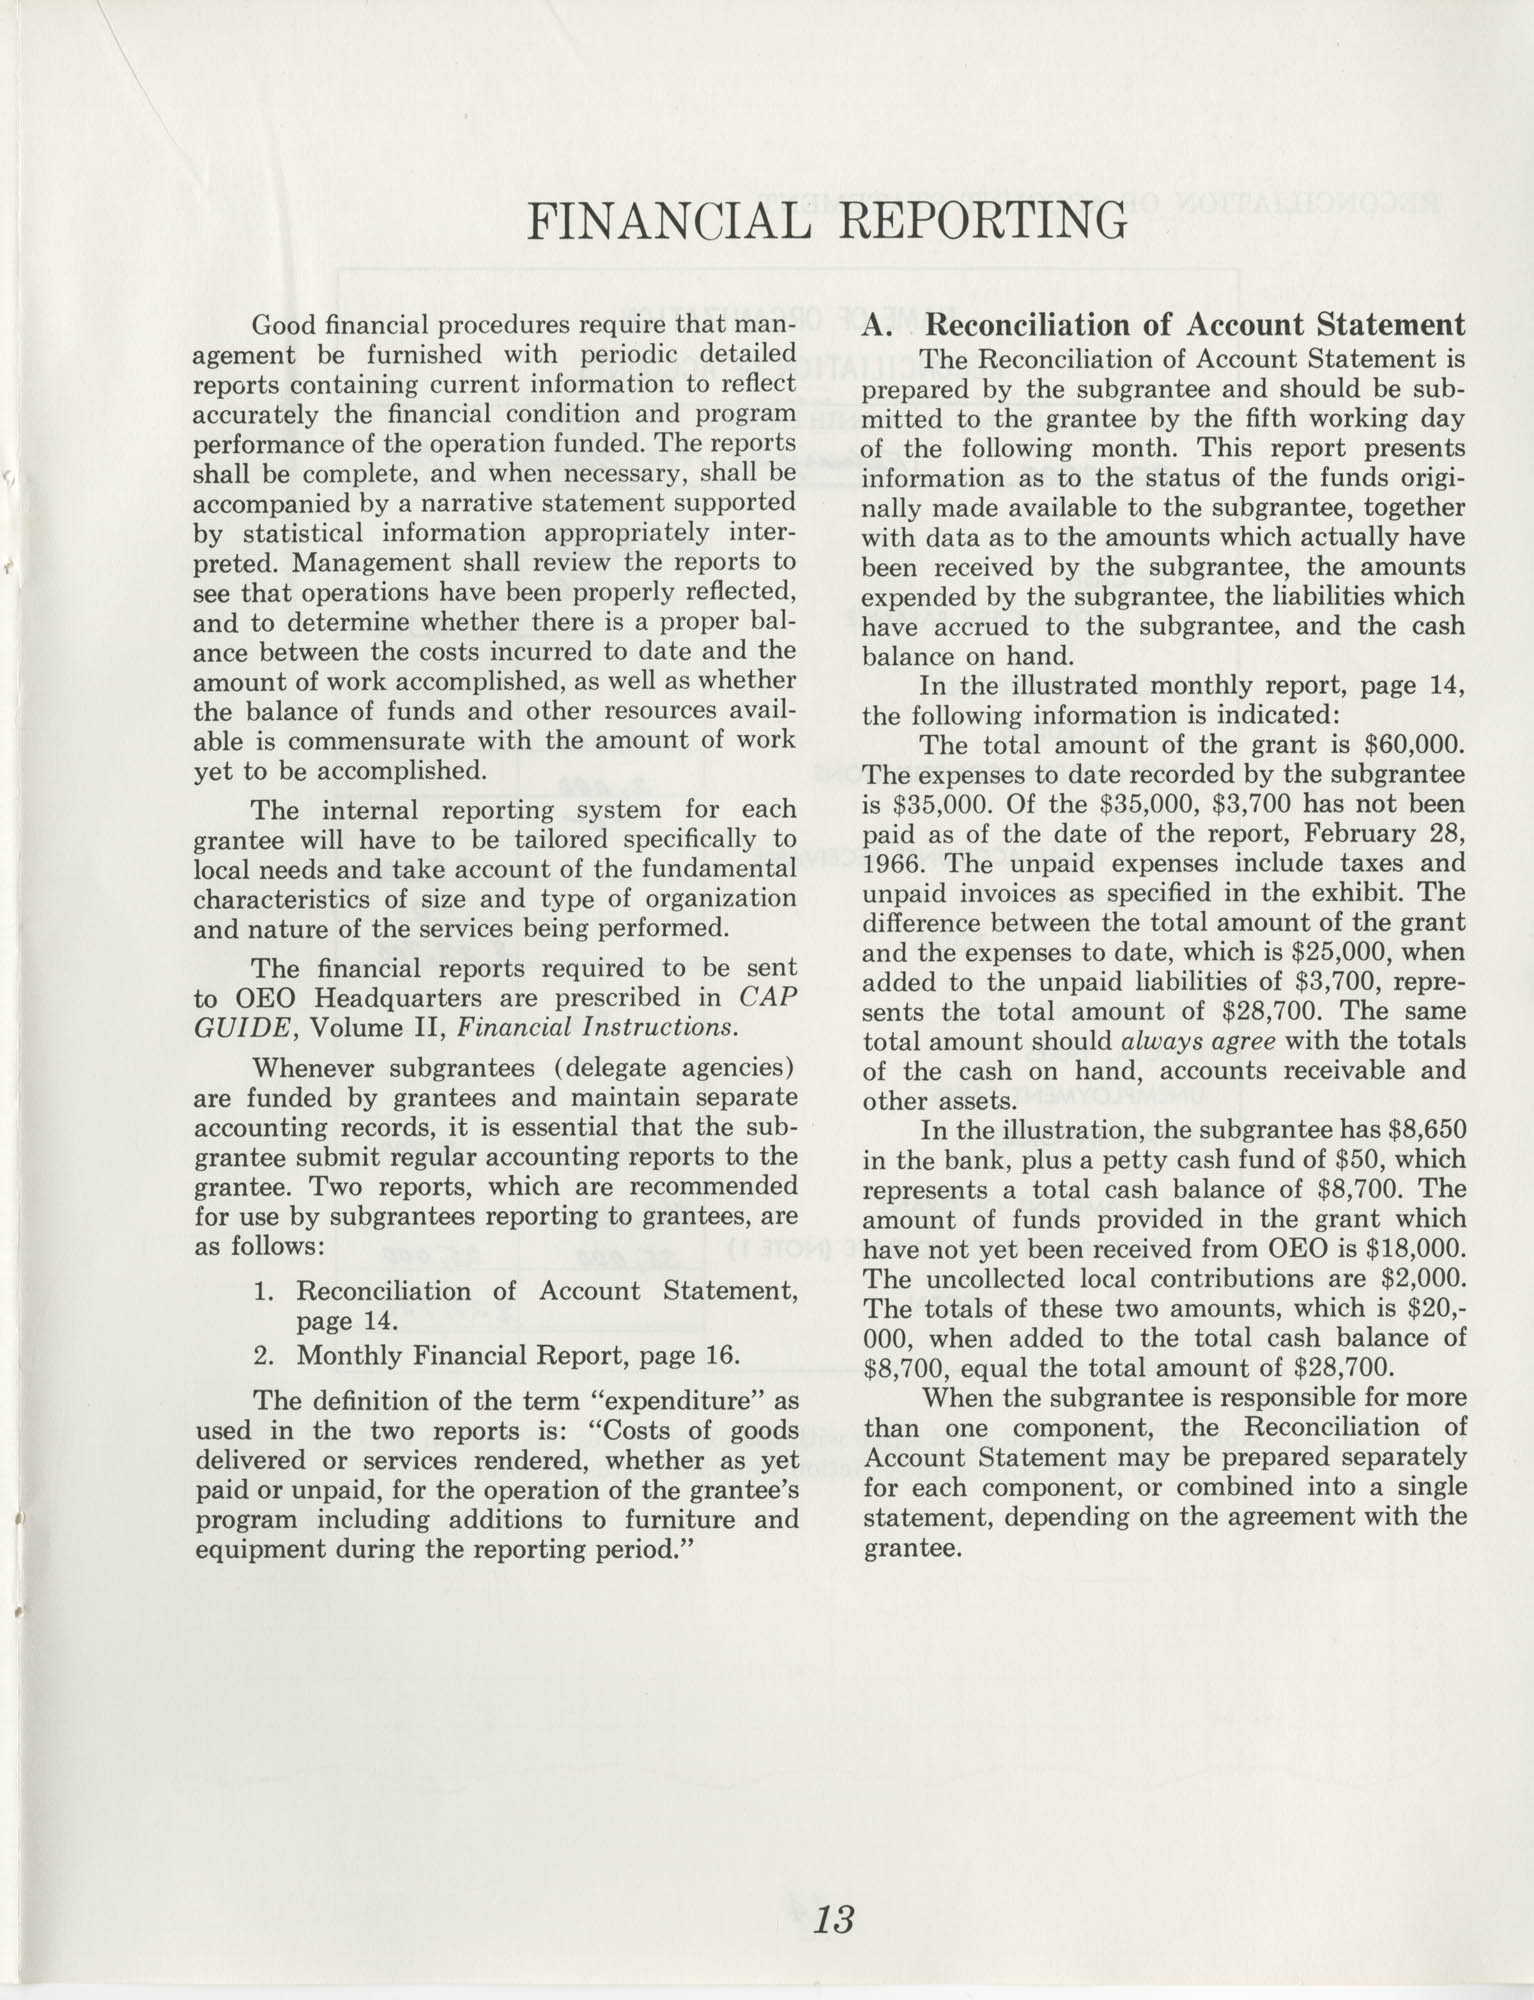 Guide for Grantee Accounting, Page 13